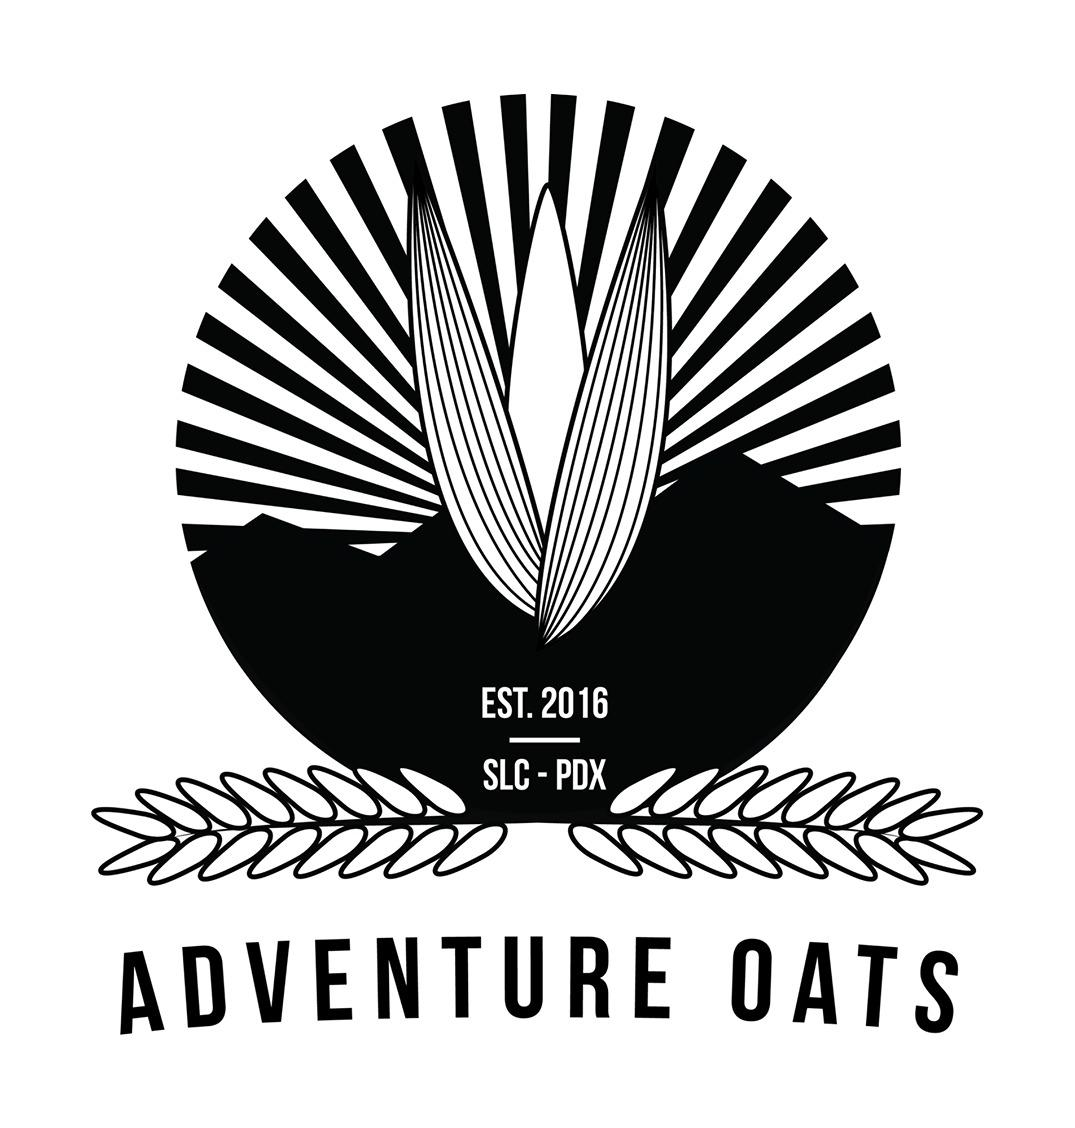 Adventure Oats Discounts